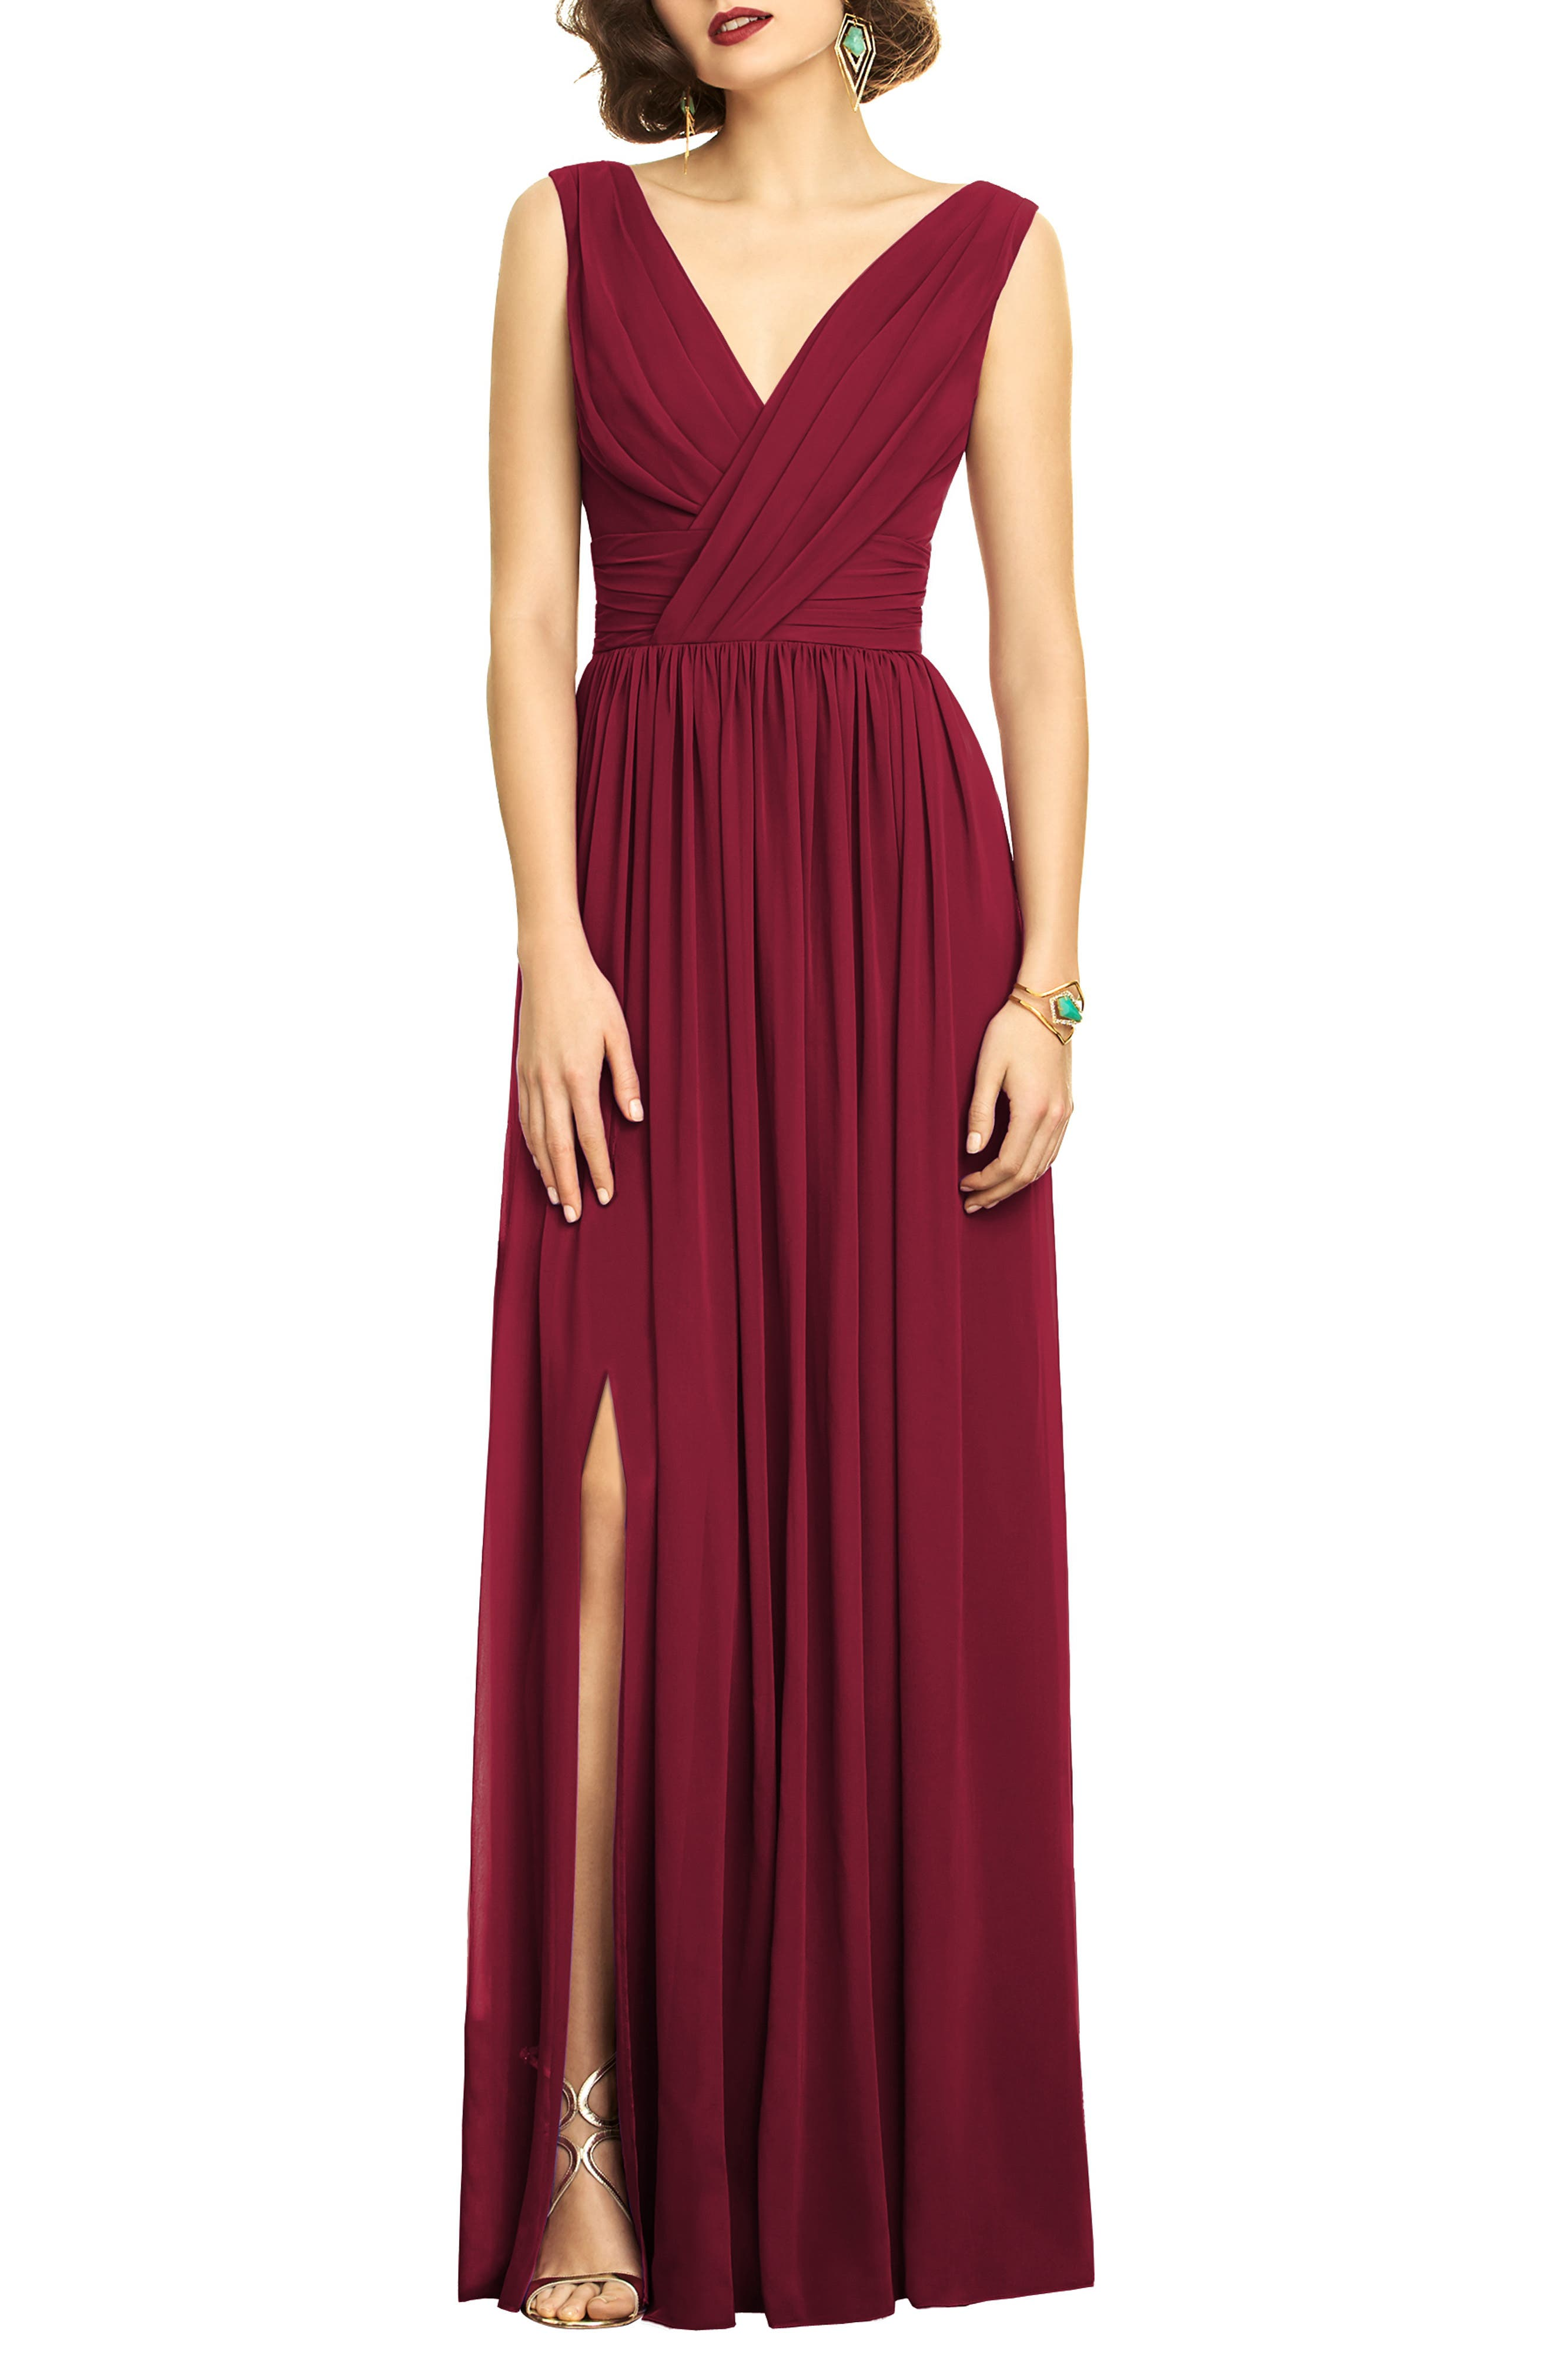 A beautifully draped chiffon gown evokes Old Hollywood glamour with a ruched bodice, flattering double necklines and a dramatically slit column skirt. Style Name: Dessy Collection Surplice Ruched Chiffon Gown. Style Number: 5253758 4. Available in stores.